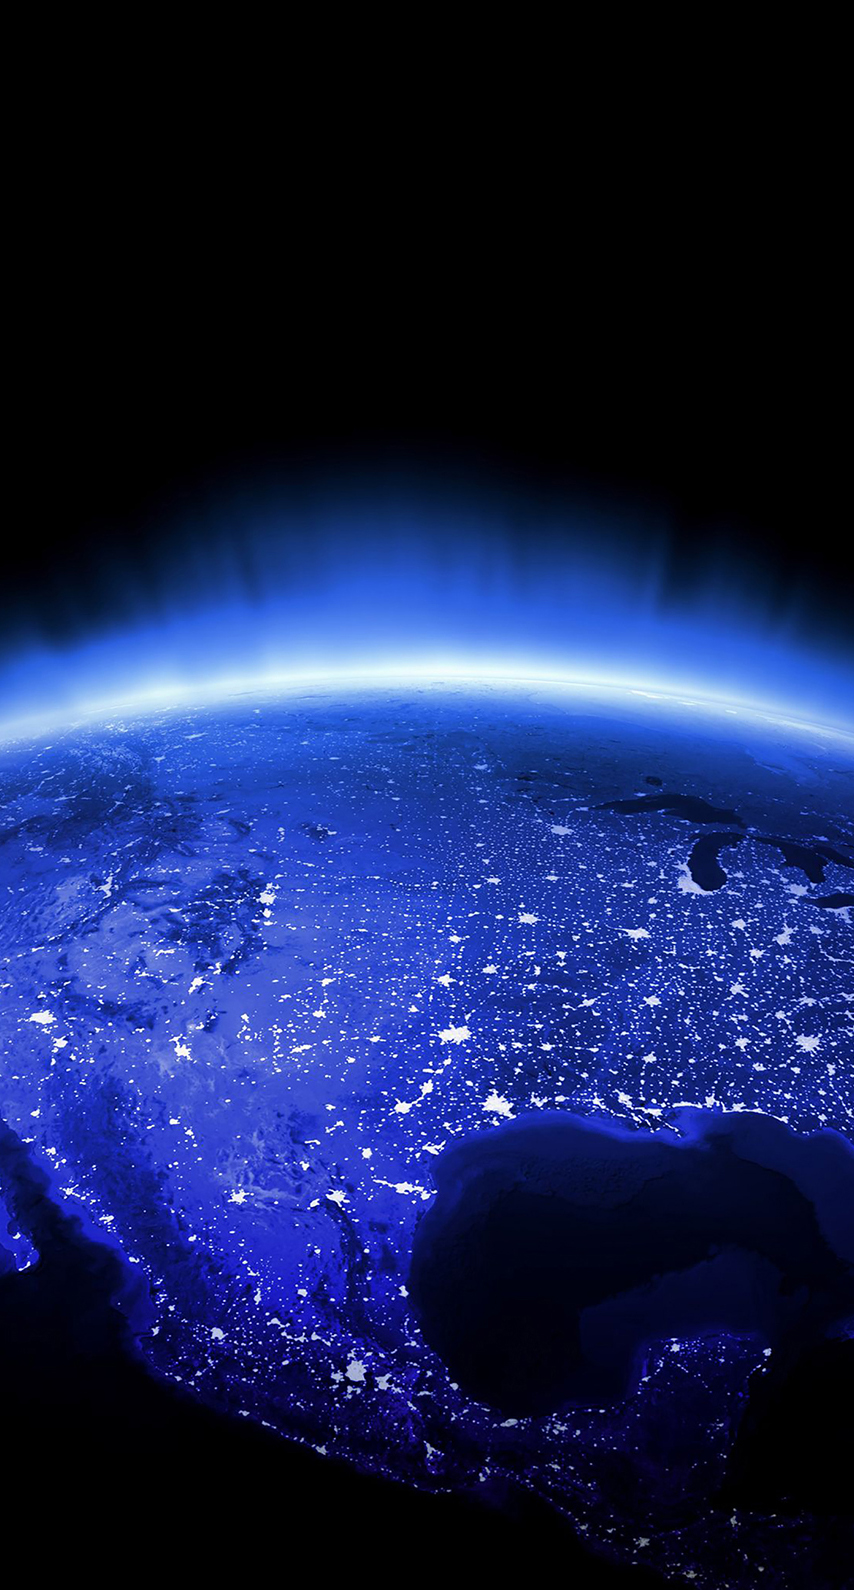 hot, no person, science, astronomy, ball-shaped, sphere, atmosphere, energy, h2o, natural gas